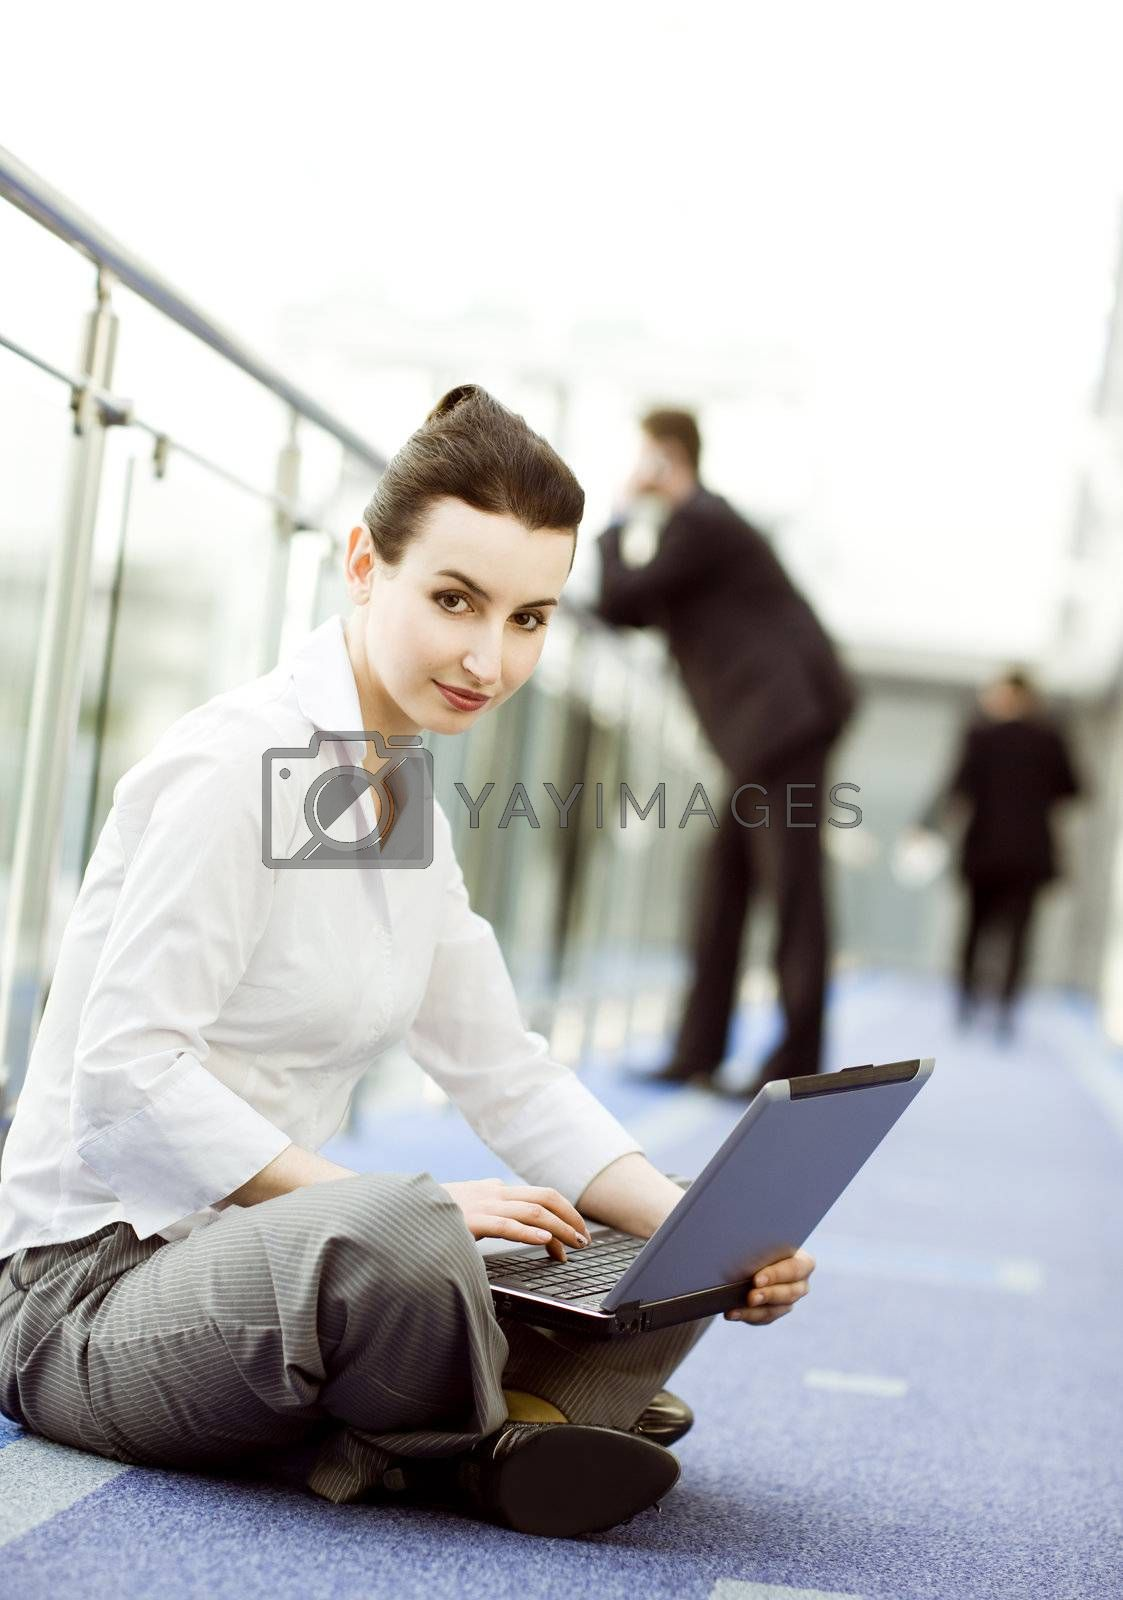 Businesswoman is sitting on the floor with notebook on her lap